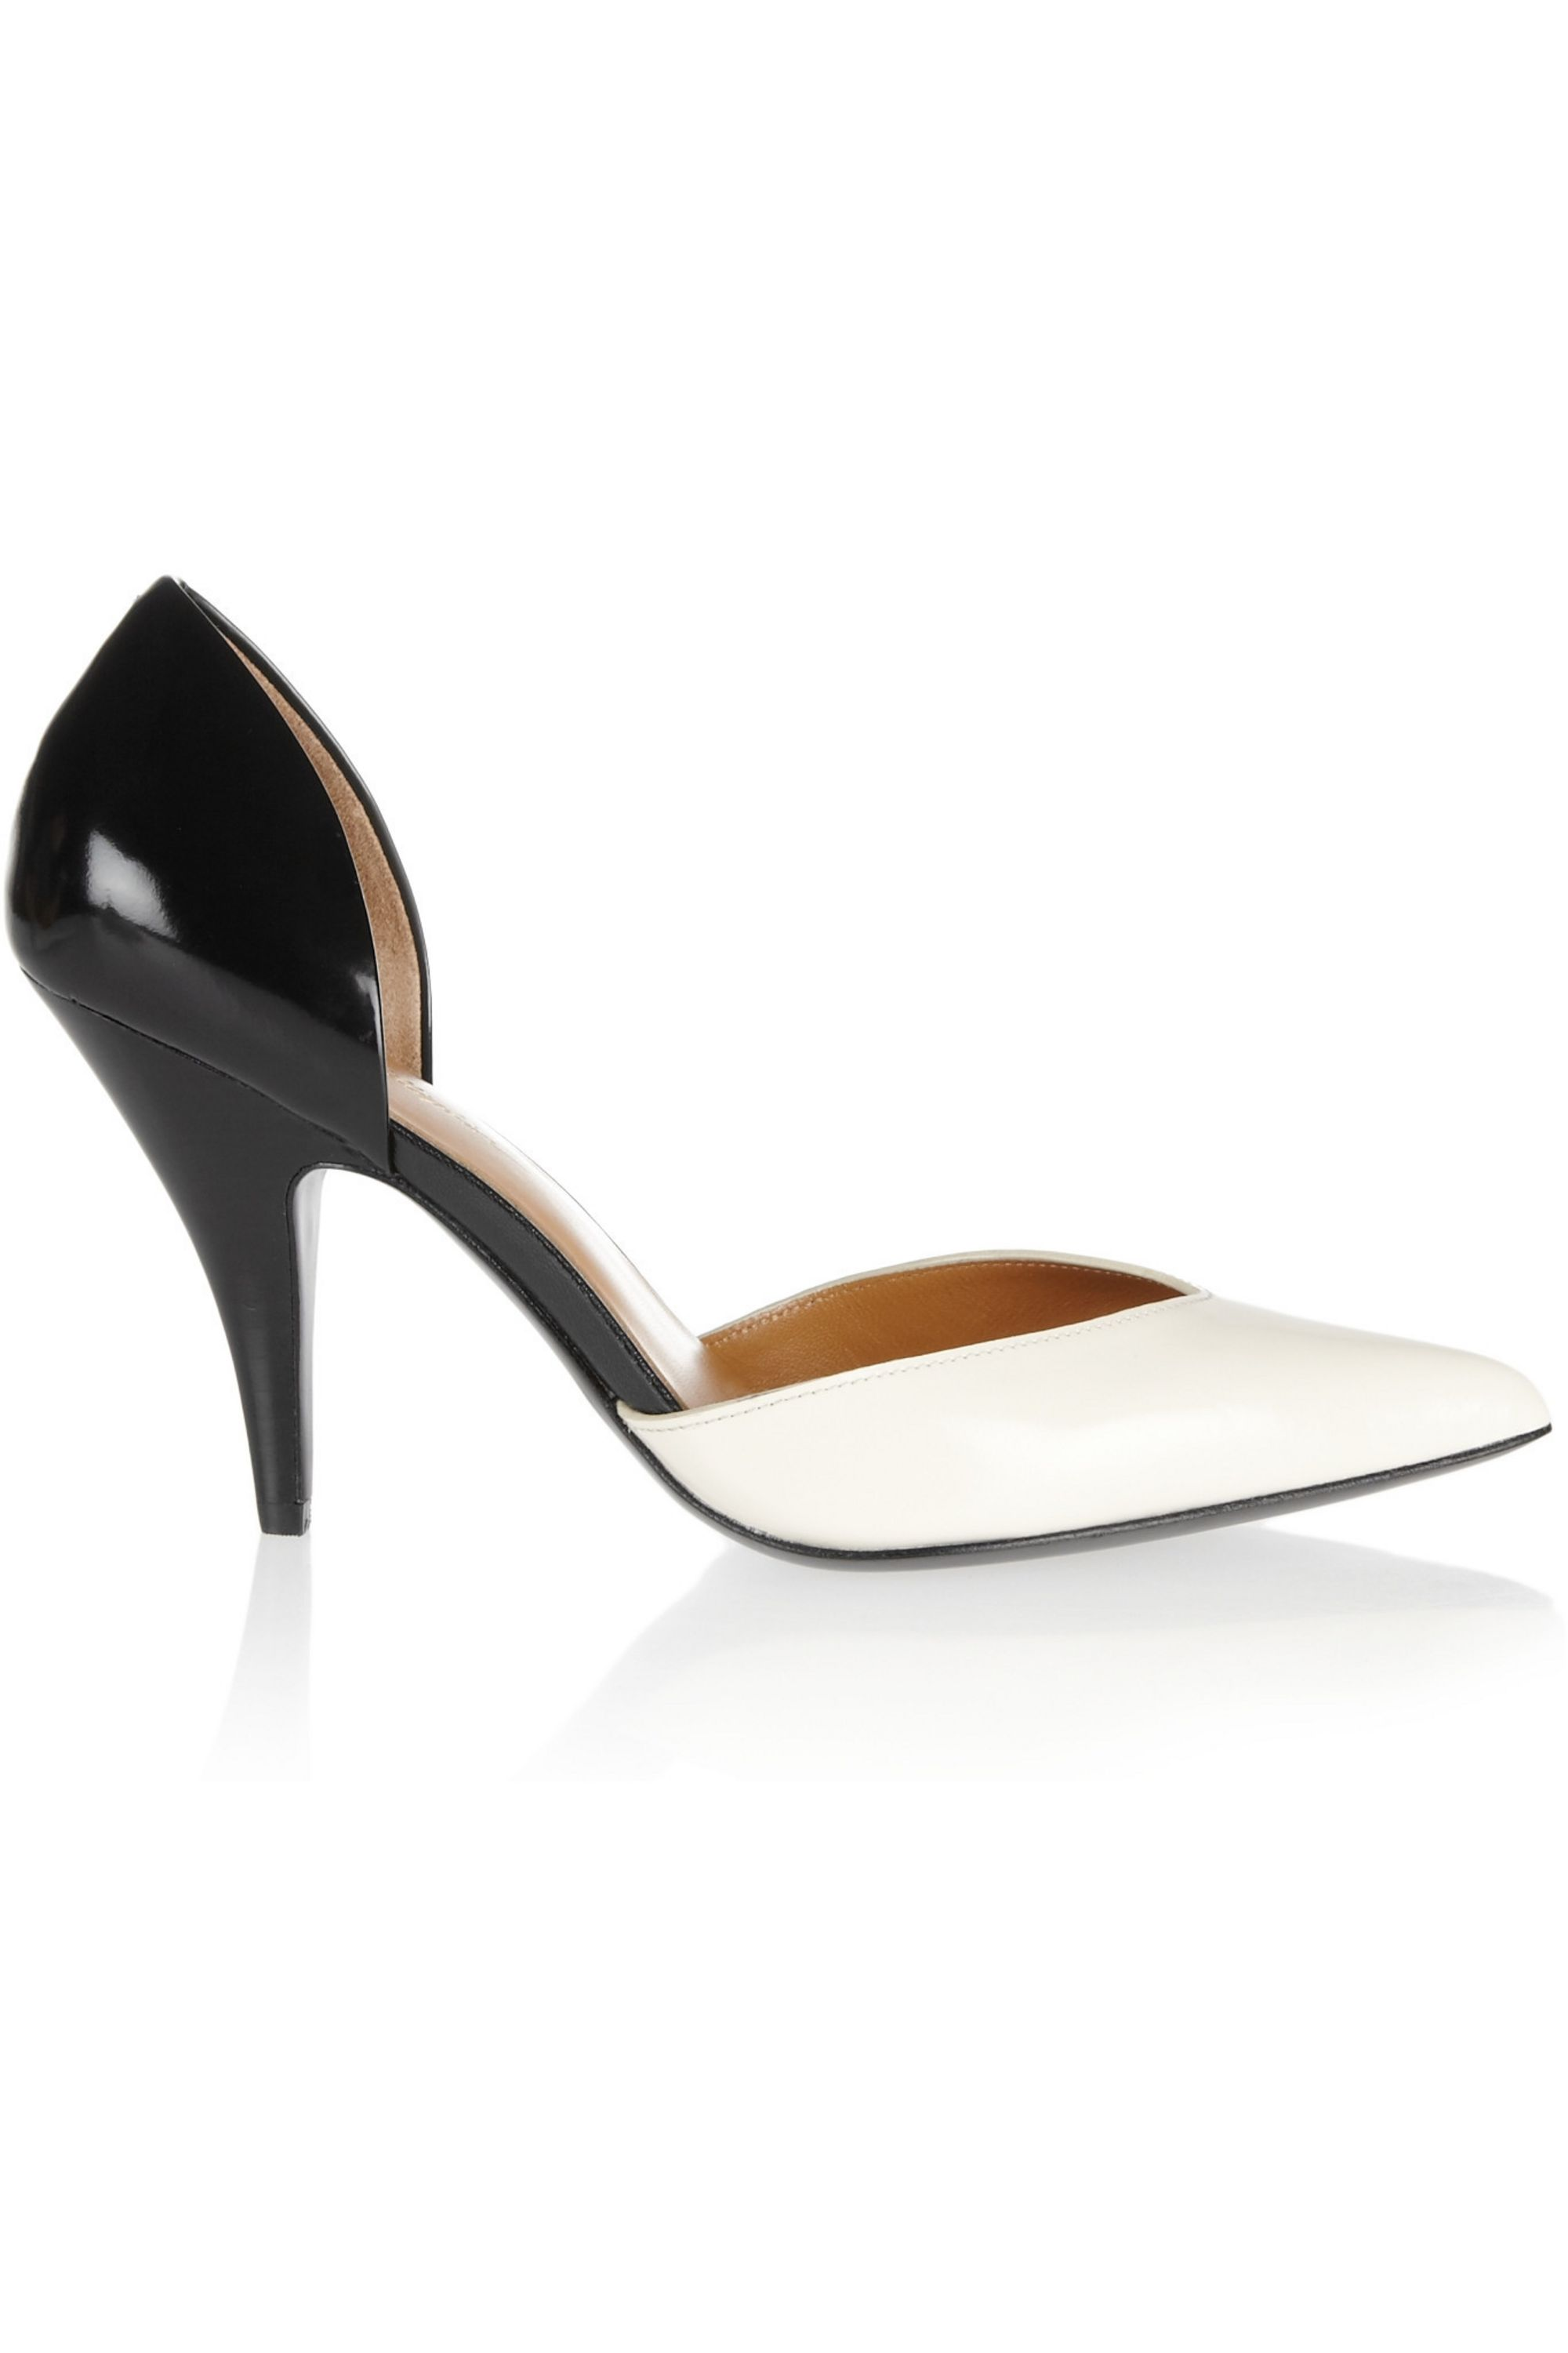 3.1 Phillip Lim Ava leather pumps